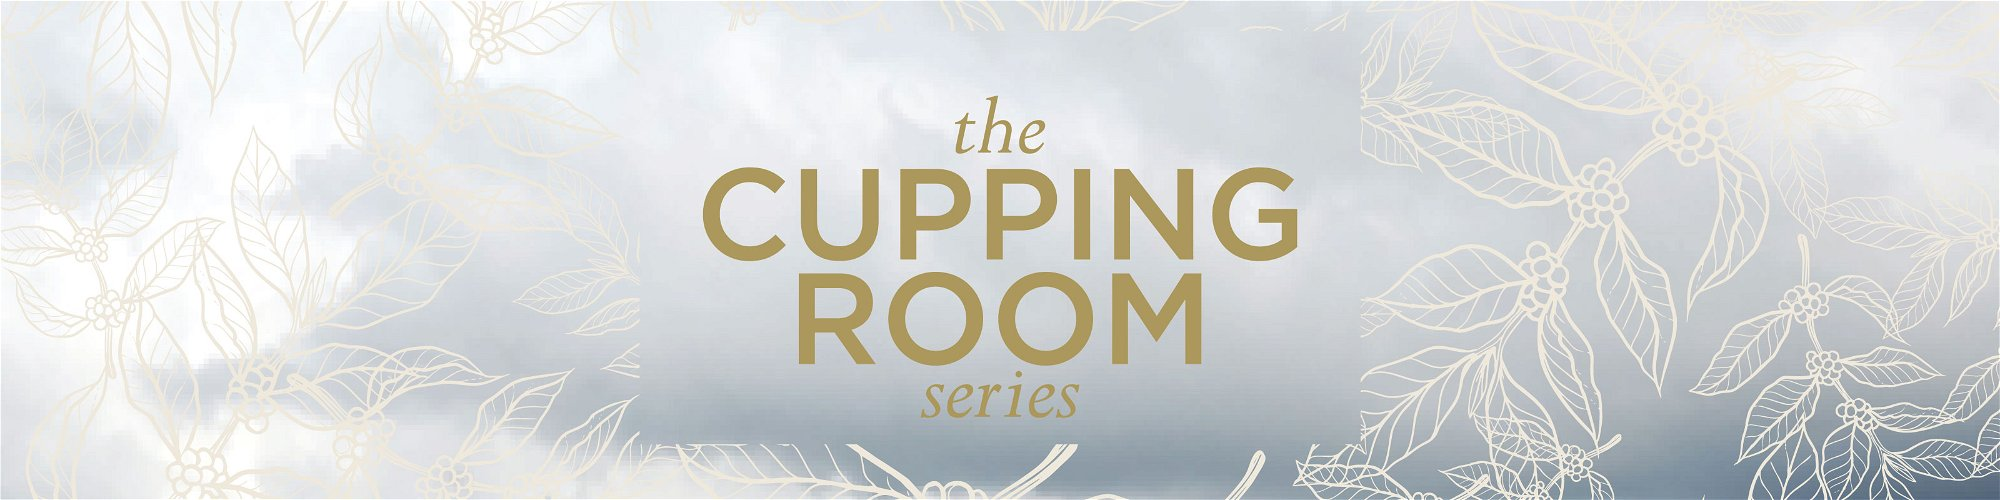 The Cupping Room Series Coffees | Microlots and Special Coffee Selections